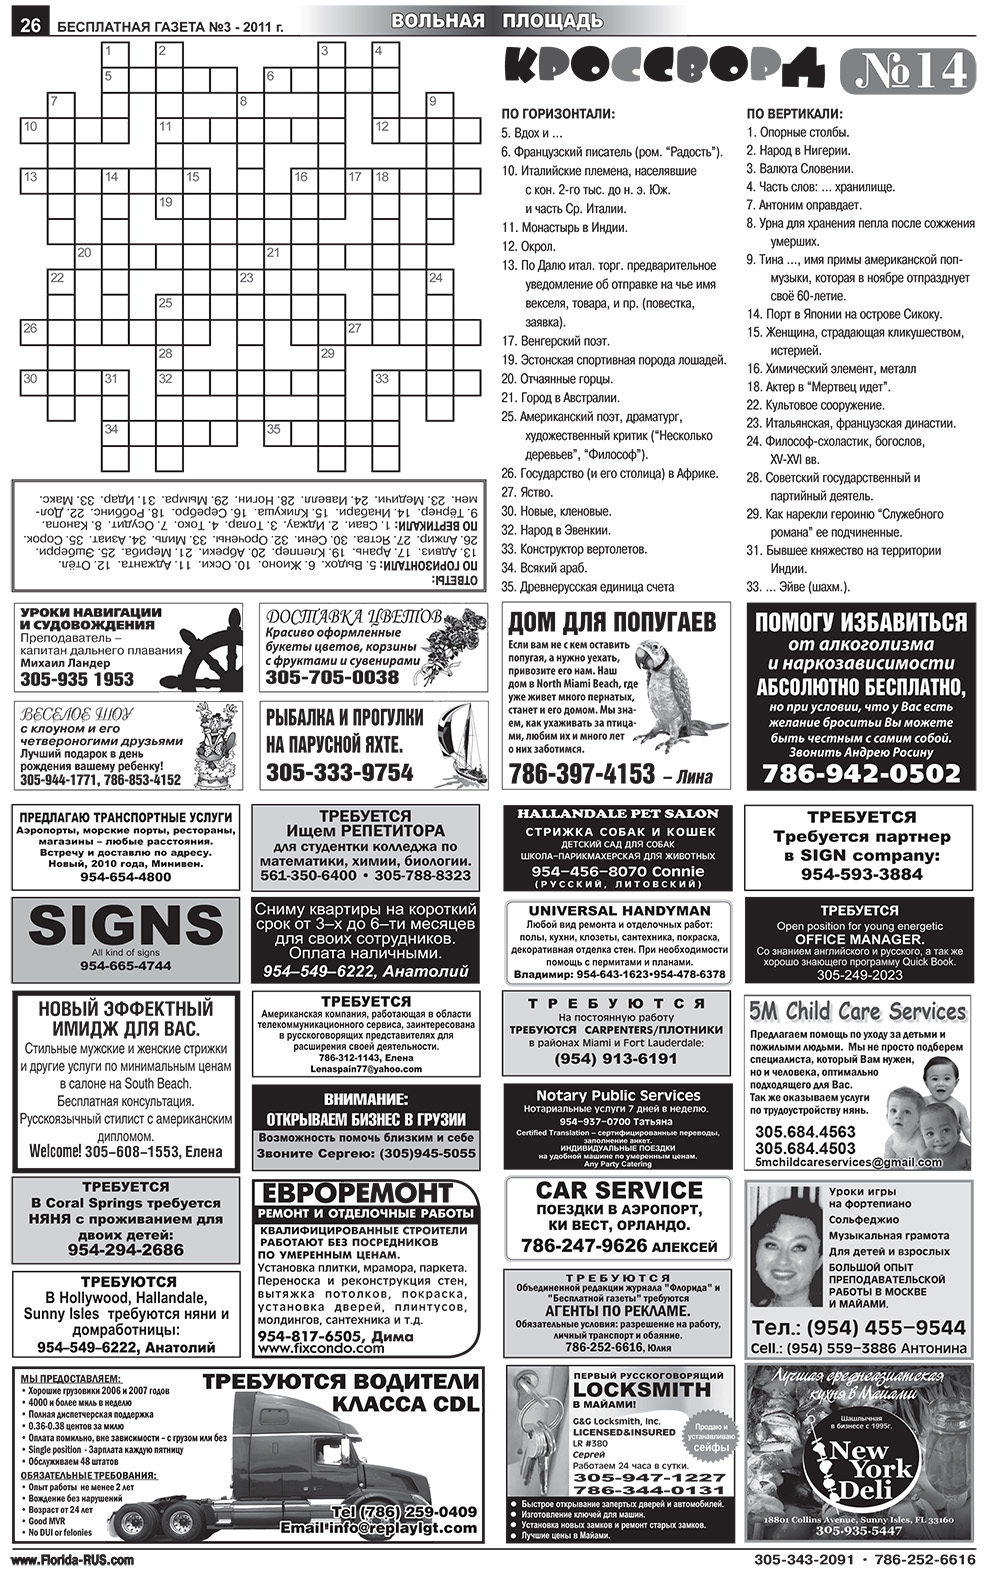 Newspaper advertising 26